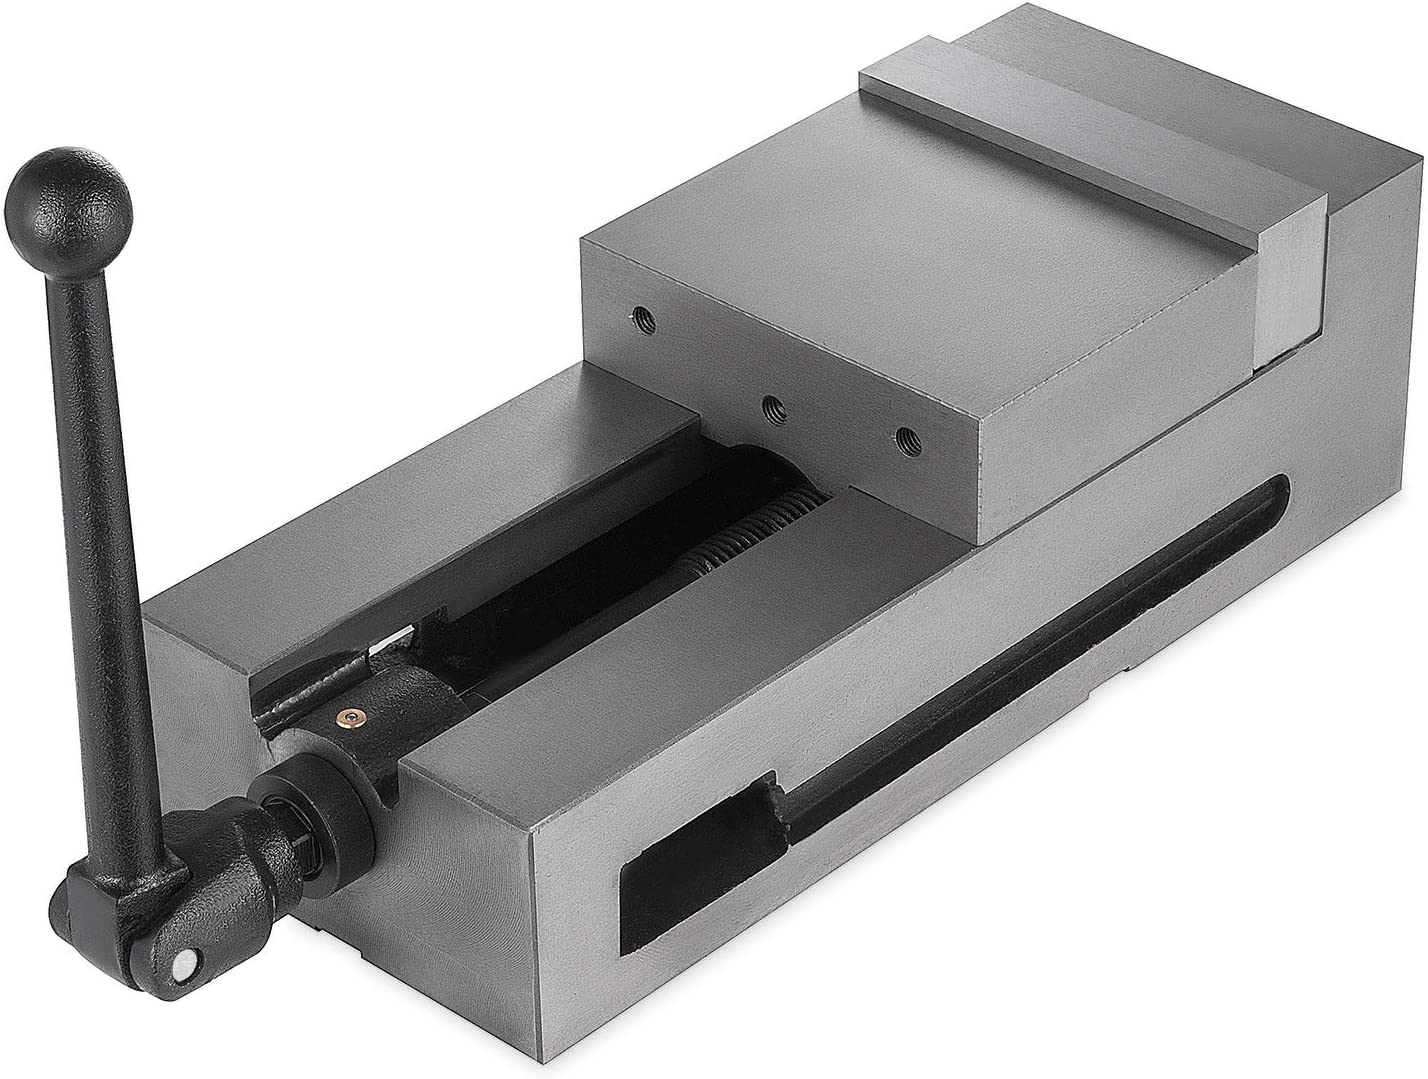 Mophorn High Arlington Mall Precision Milling Vice 6 Inch Clamp Price reduction Vise Bench Nodu